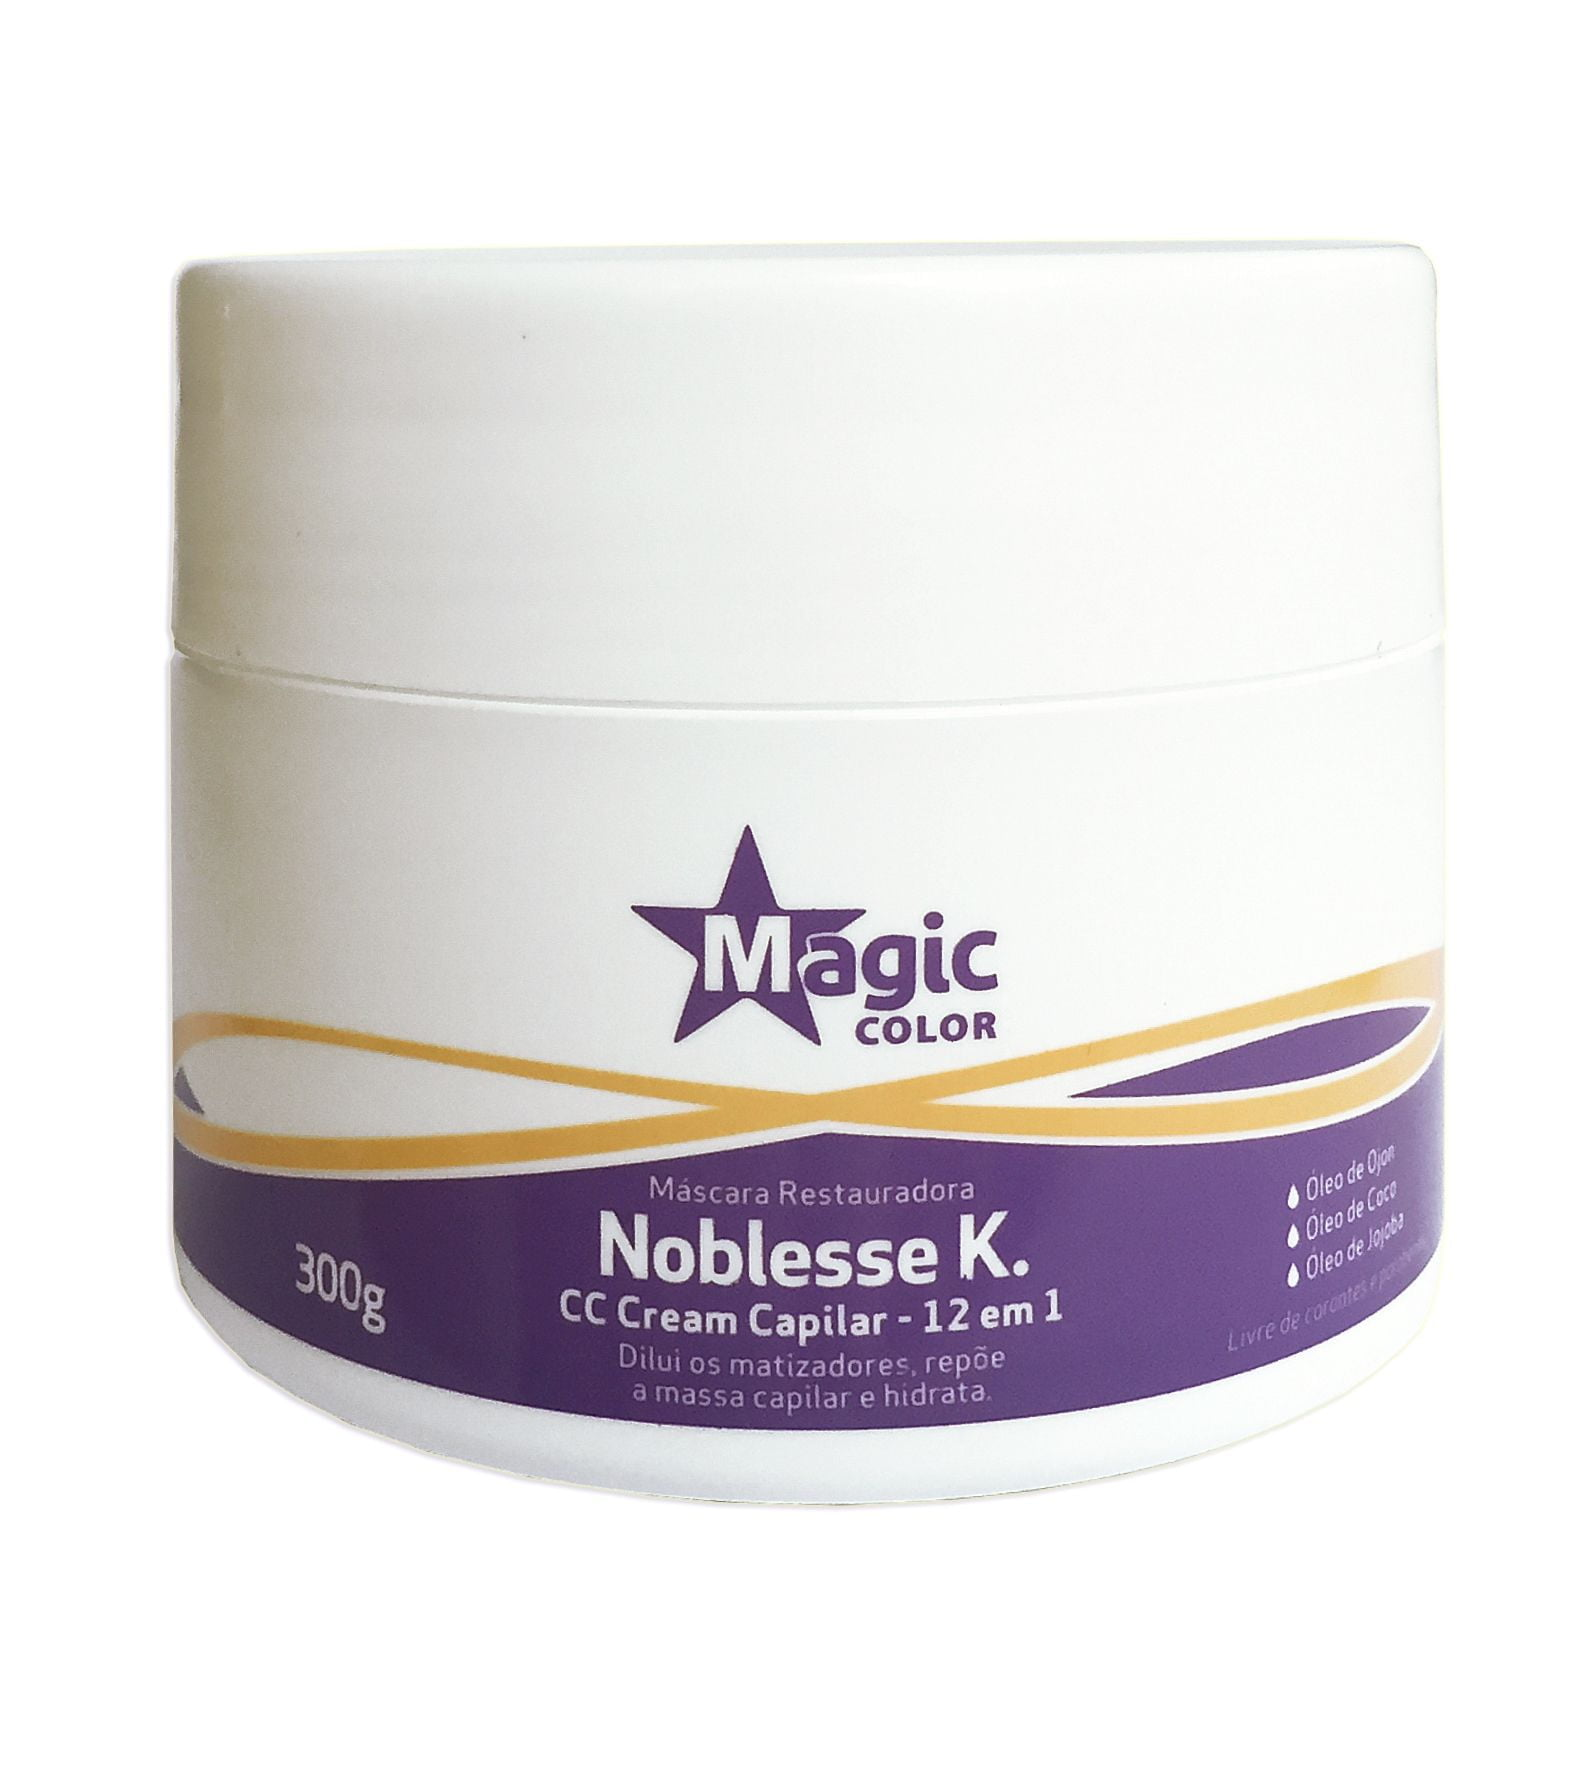 Noblesse K. CC Cream Capilar 300g - Magic Color